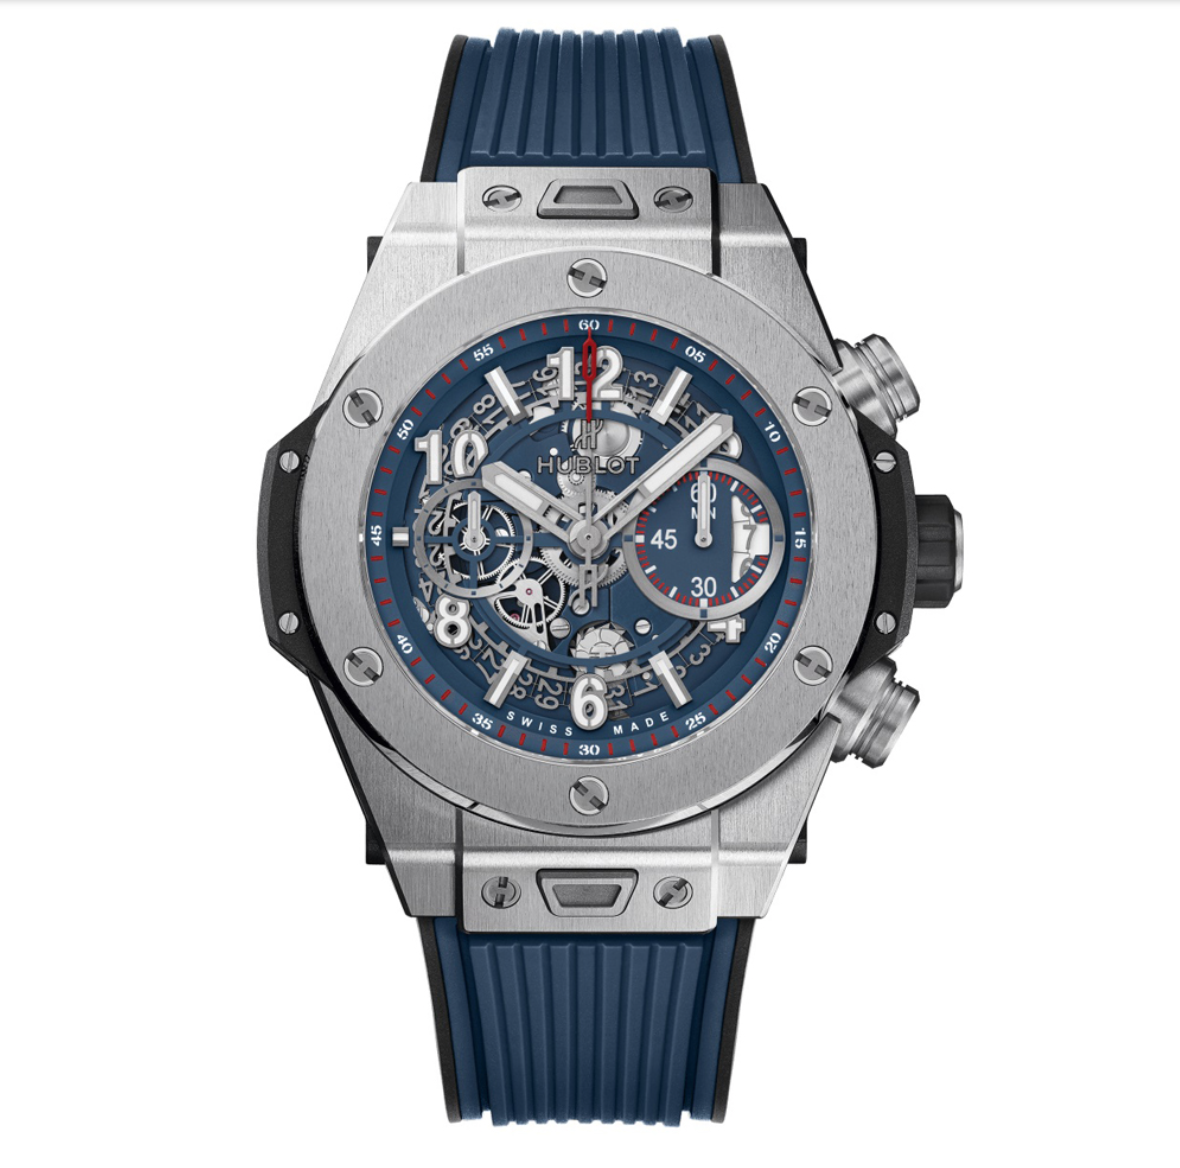 Hublot Big Bang Unico Titanium Blue Watch for the guys who love arm candy